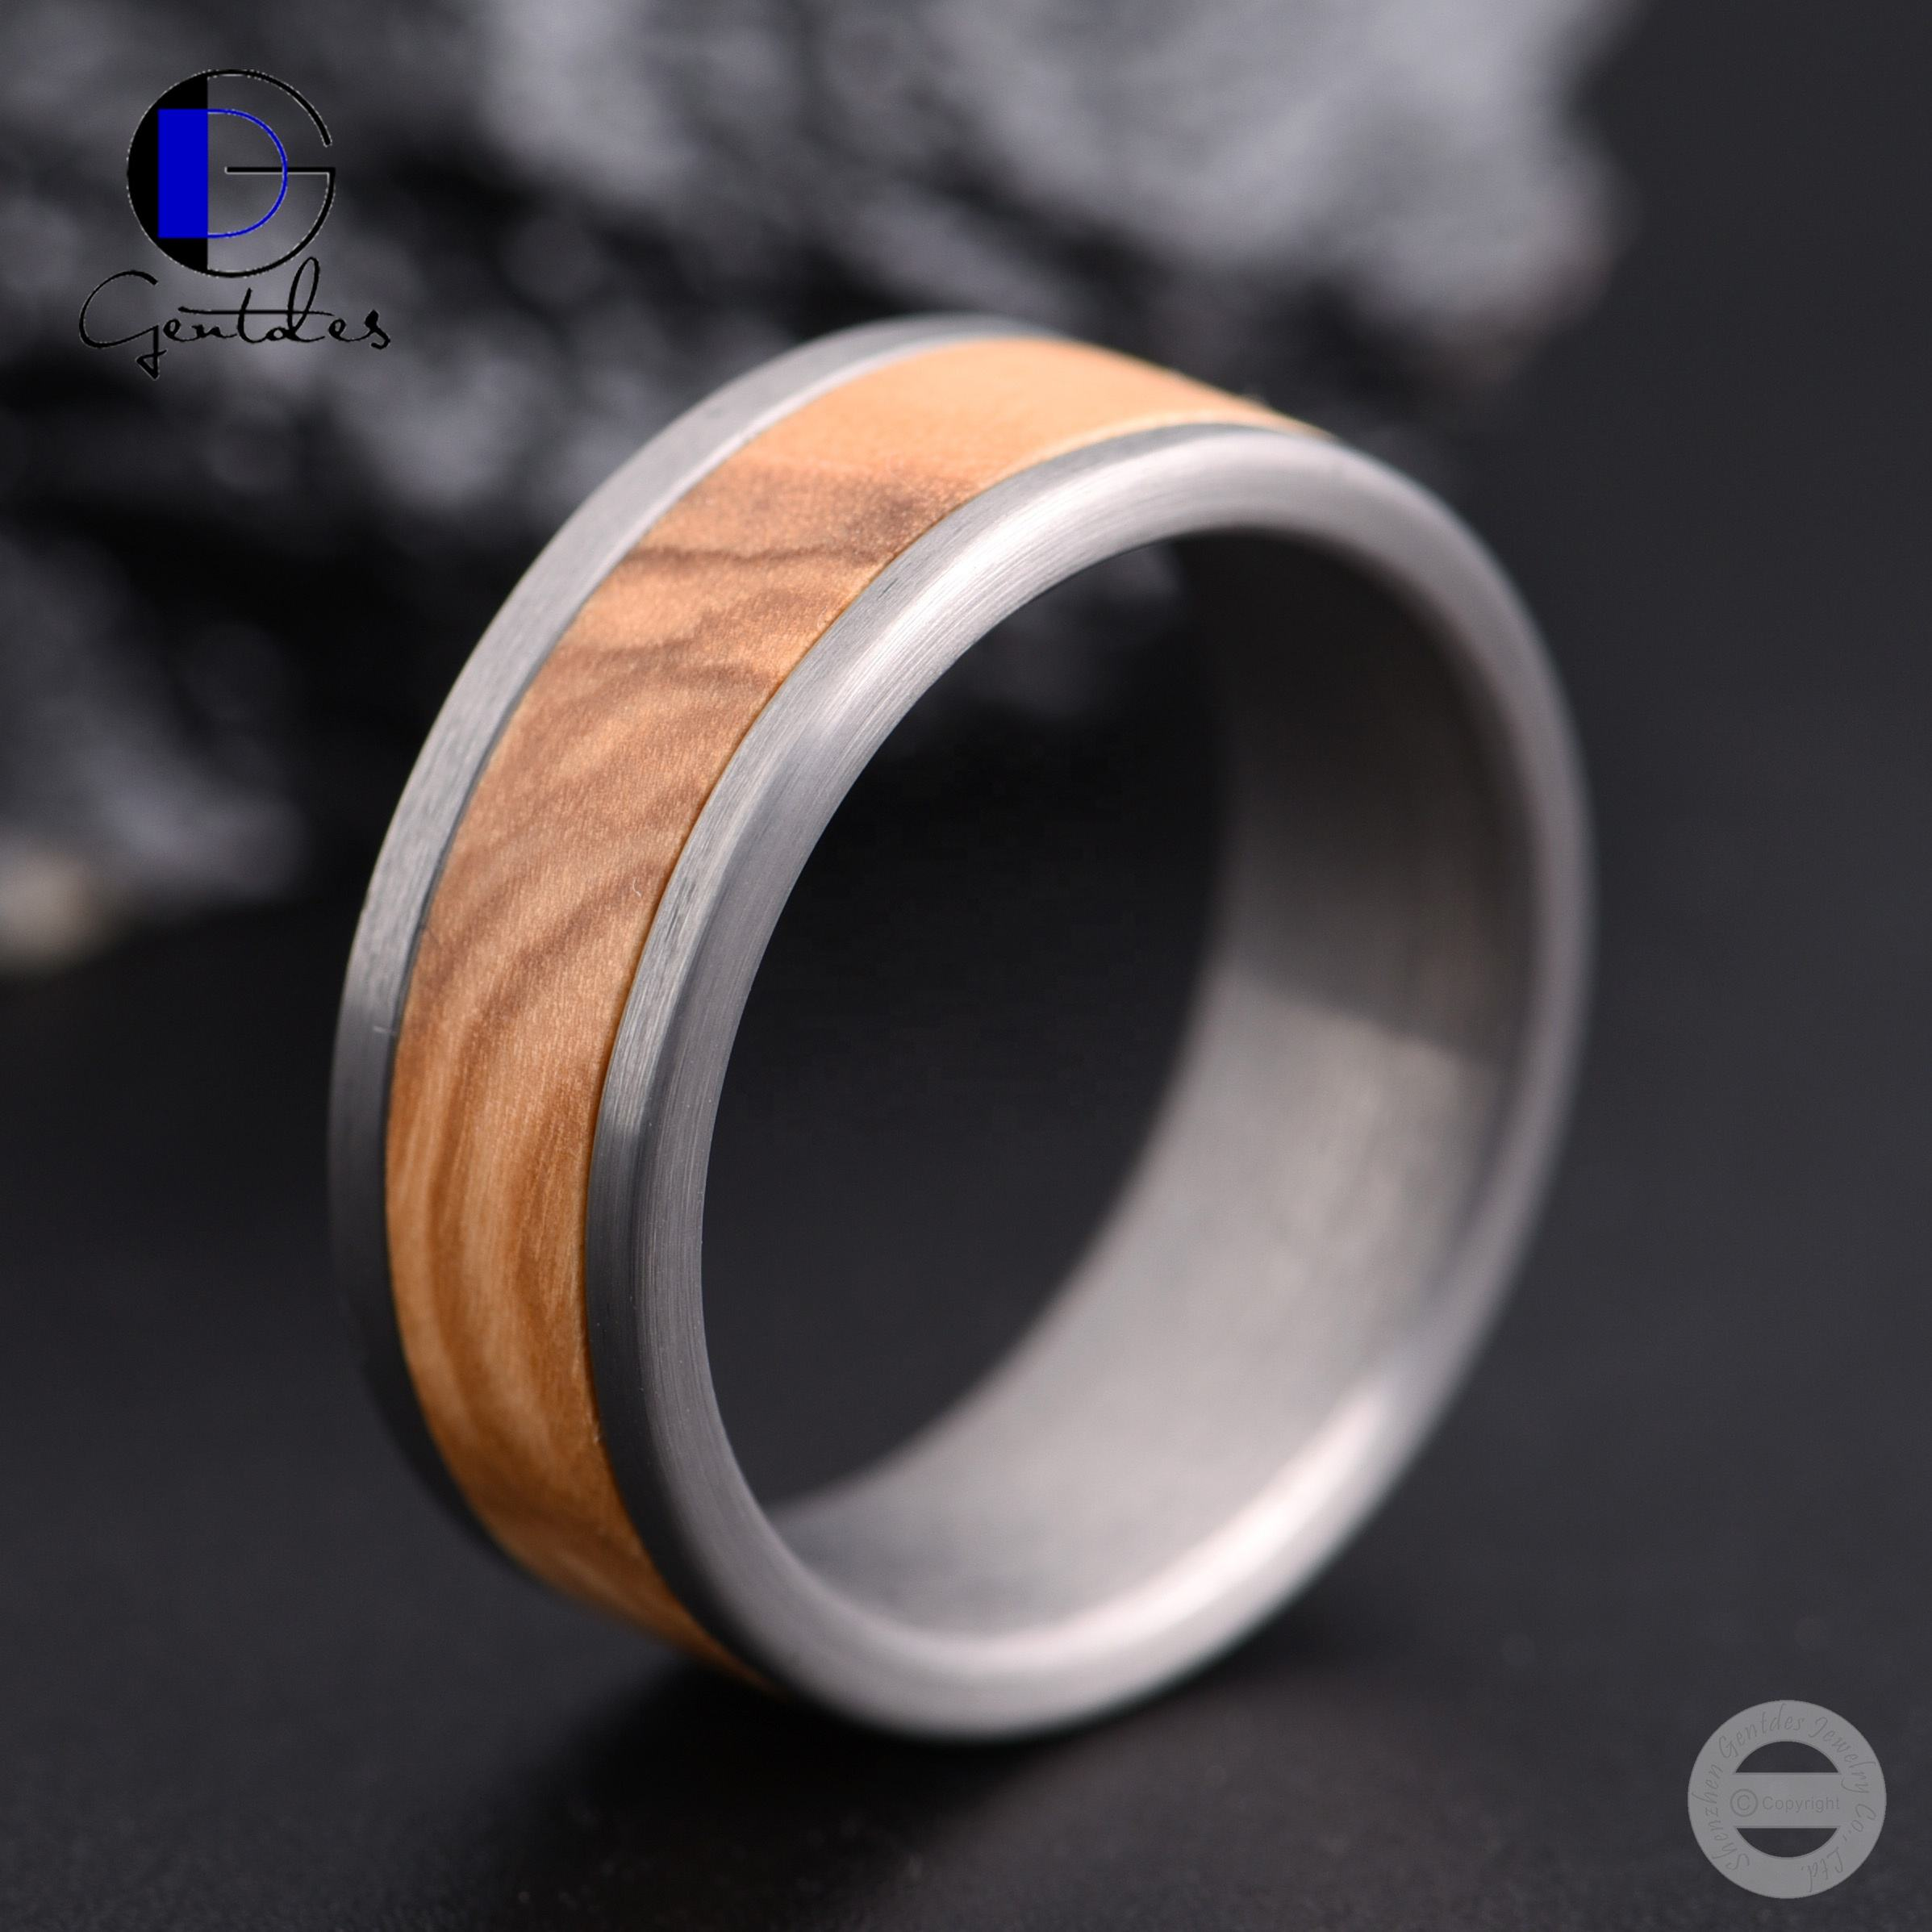 Gentdes Jewelry Brushed Tungsten Olive Wood Inlay Ring For Mens